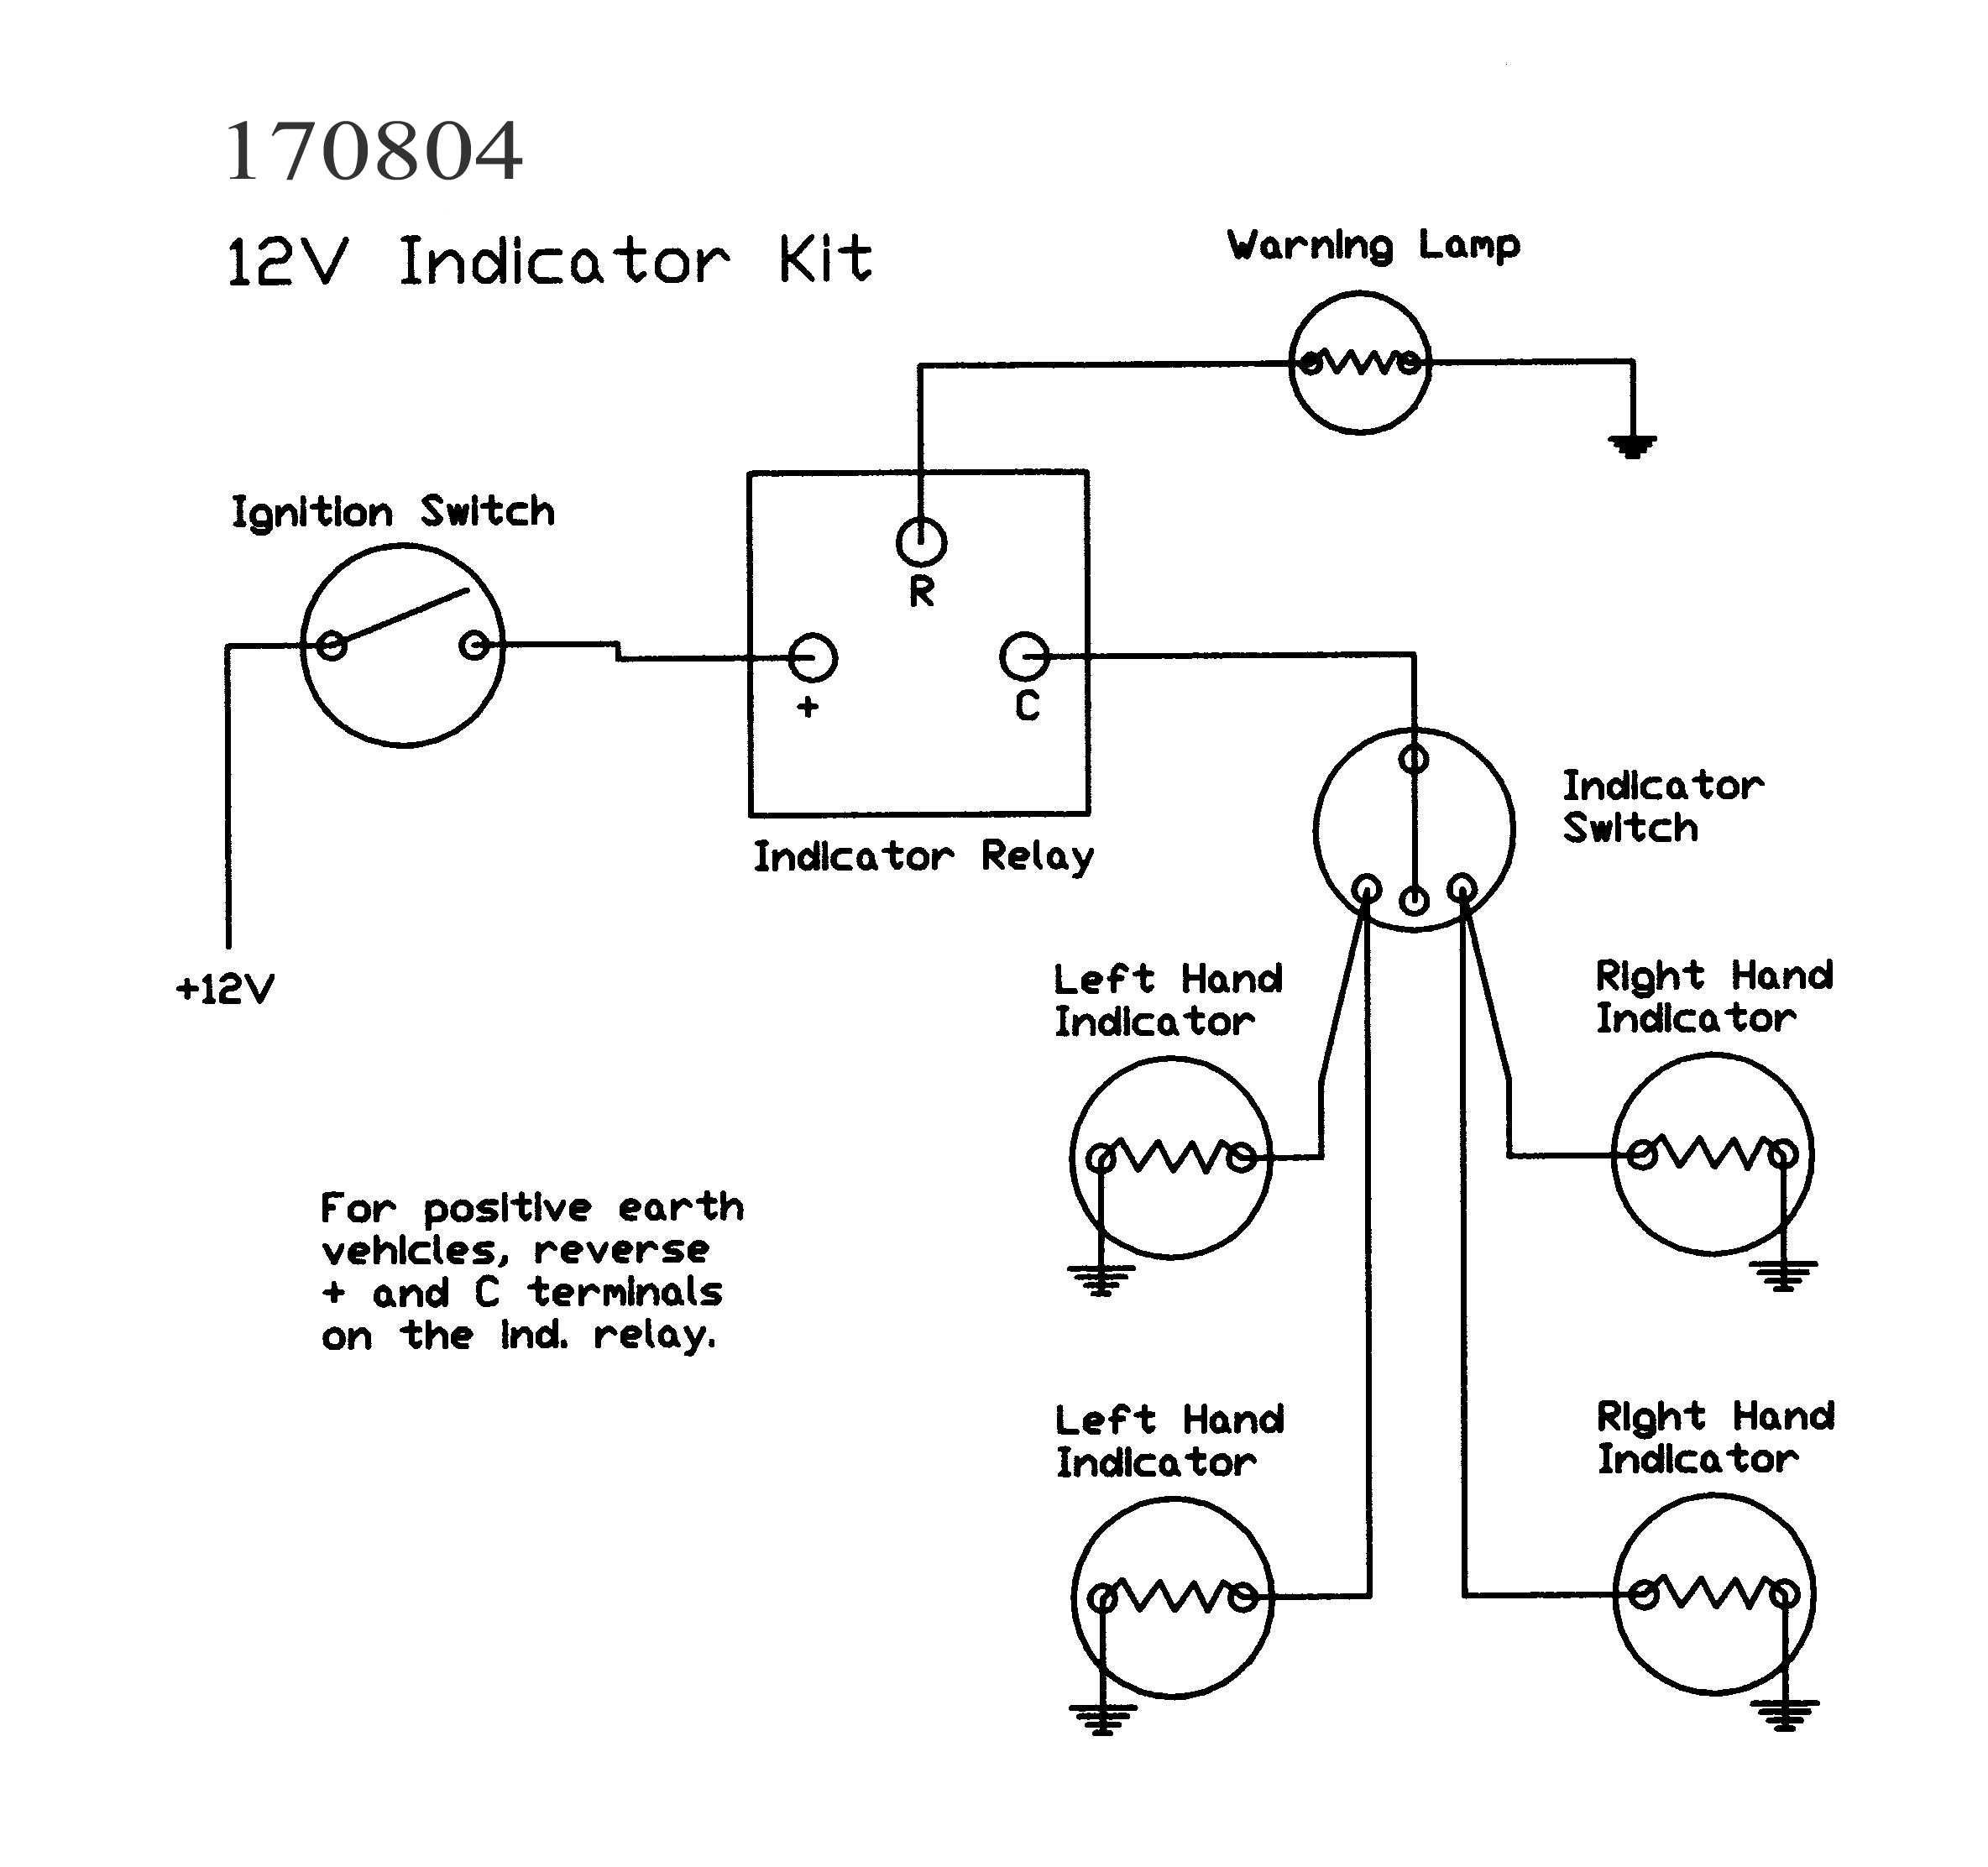 Basic Vespa 12v Wire Diagram Guide And Troubleshooting Of Wiring Indicator Kits Without Lamps Electrical Diagrams Schematics